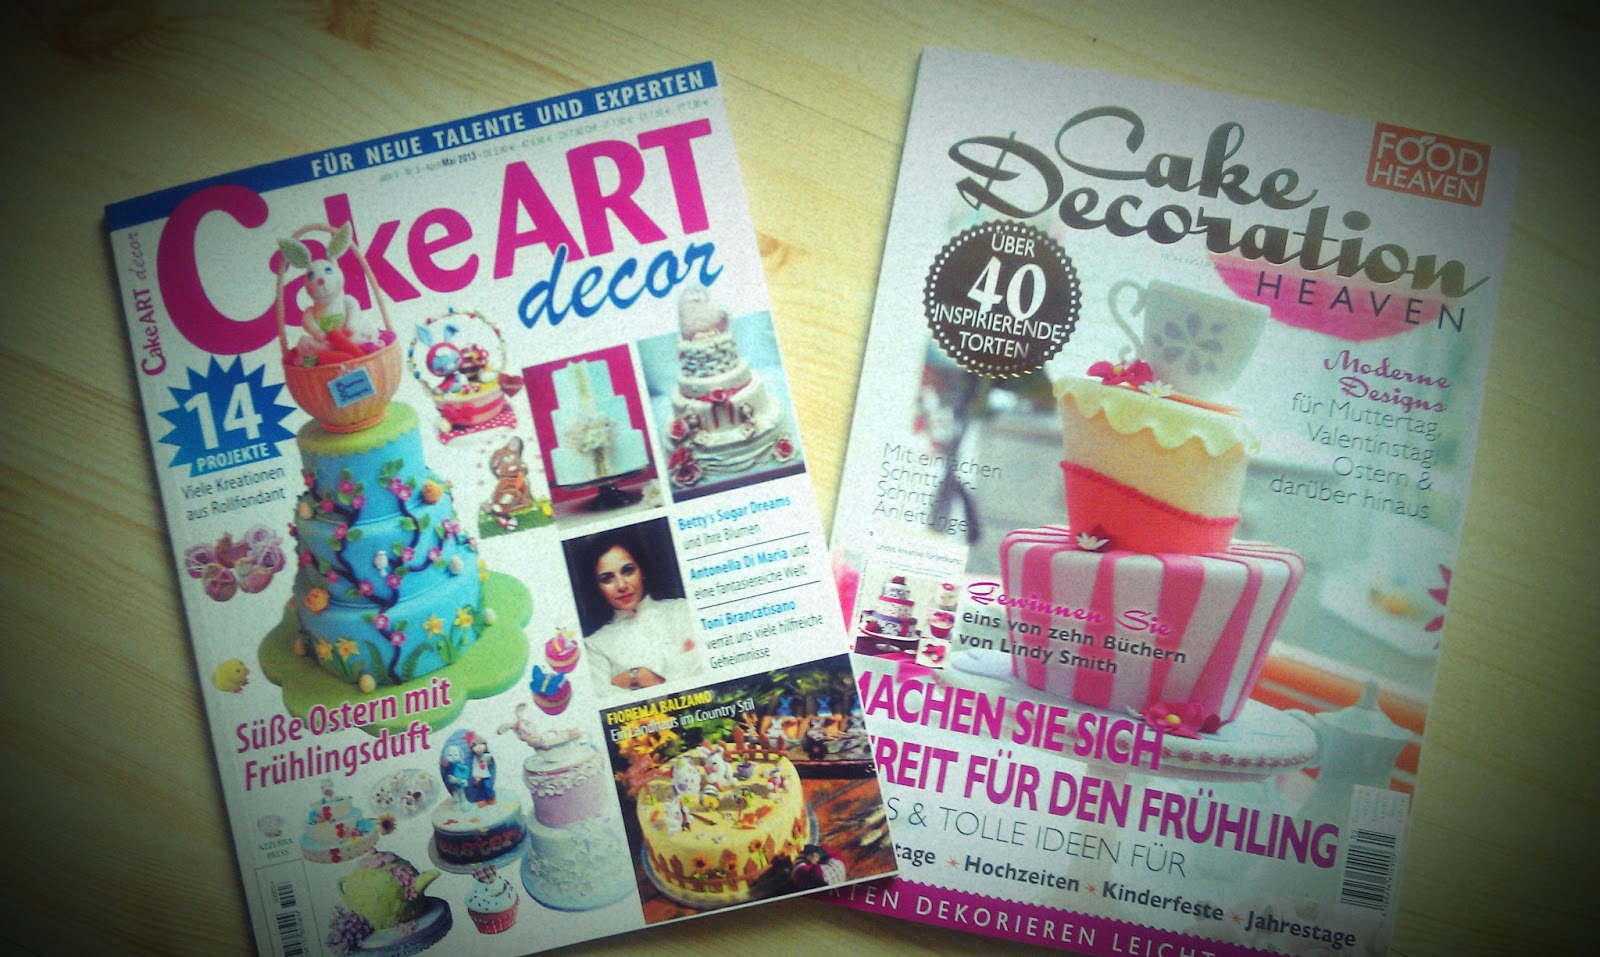 Cake Art Decor Zeitschrift : Betty?s Sugardreams - Blog: Heute am Zeitschriftenstand!